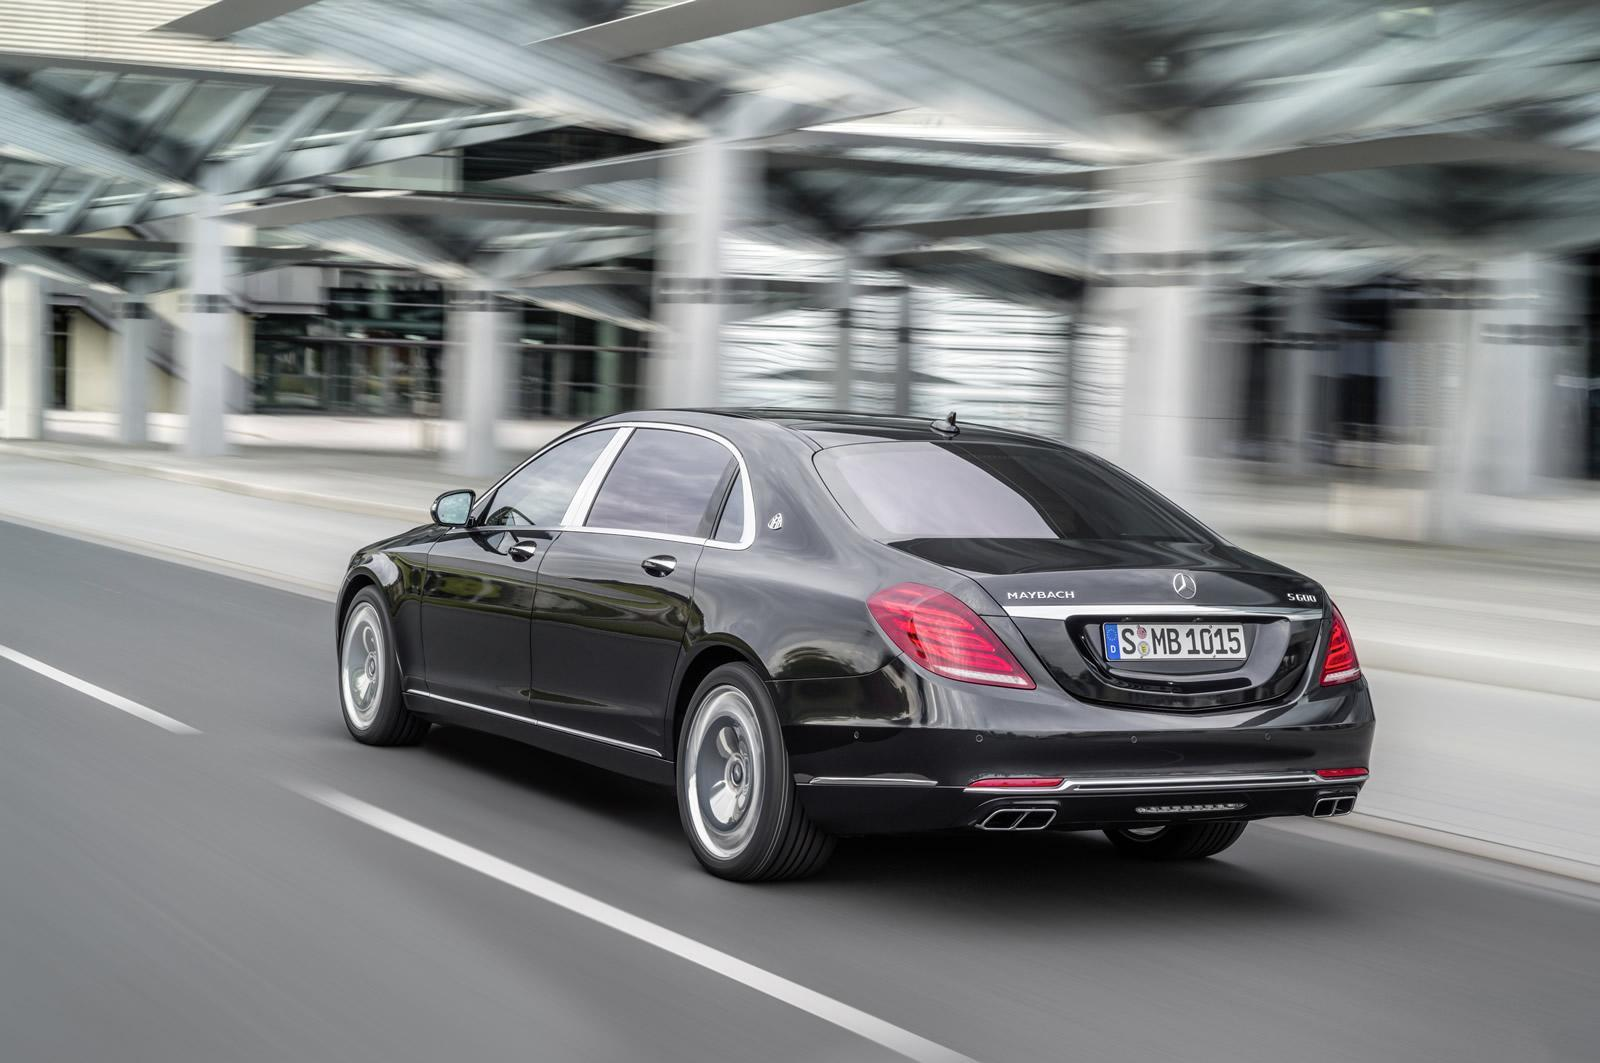 Foto de Mercedes-Benz Clase S Maybach (22/38)